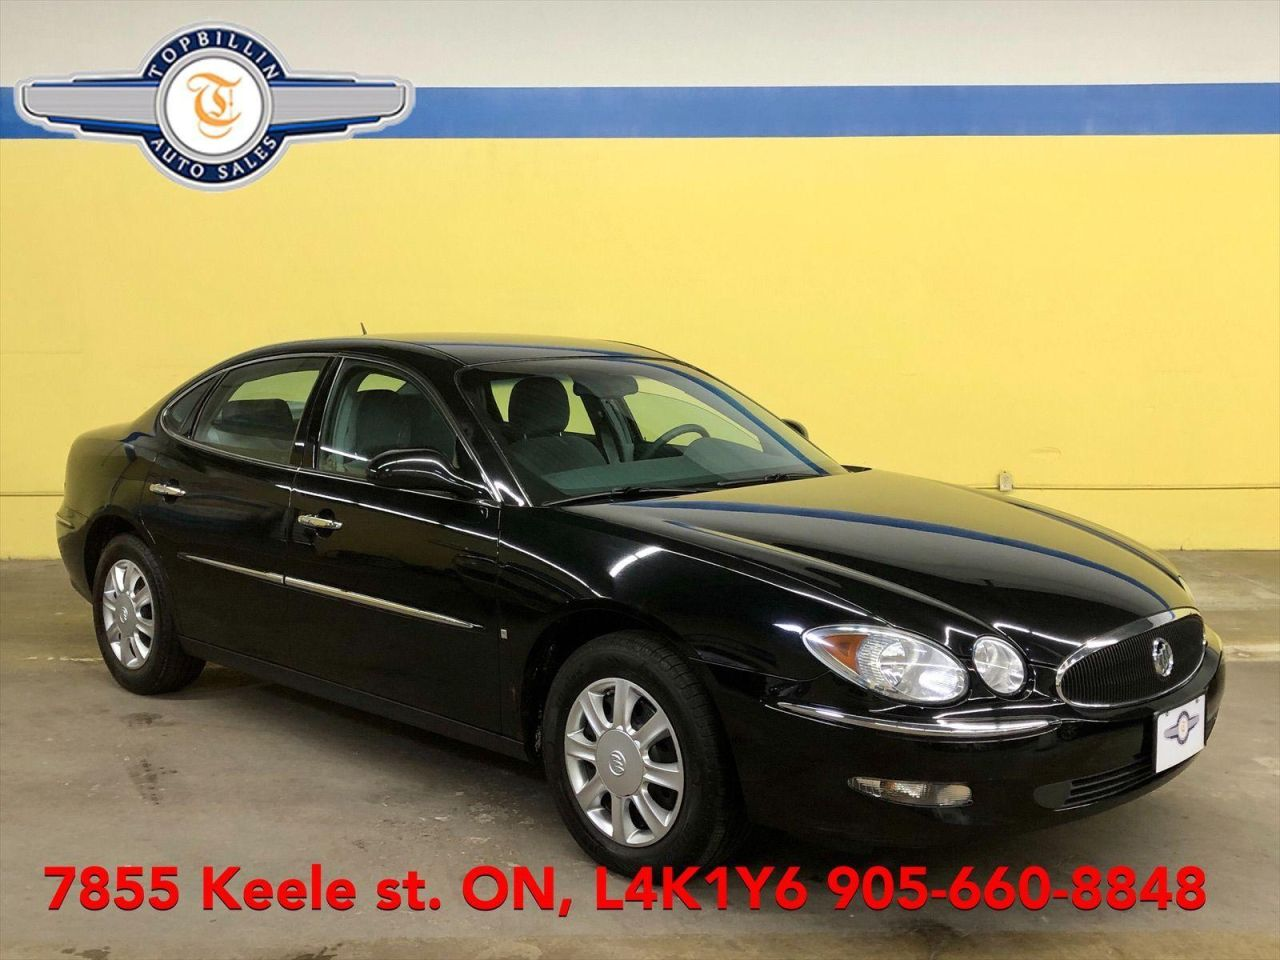 2007 Buick Allure Extra Clean, 2 Years Power-train Warranty